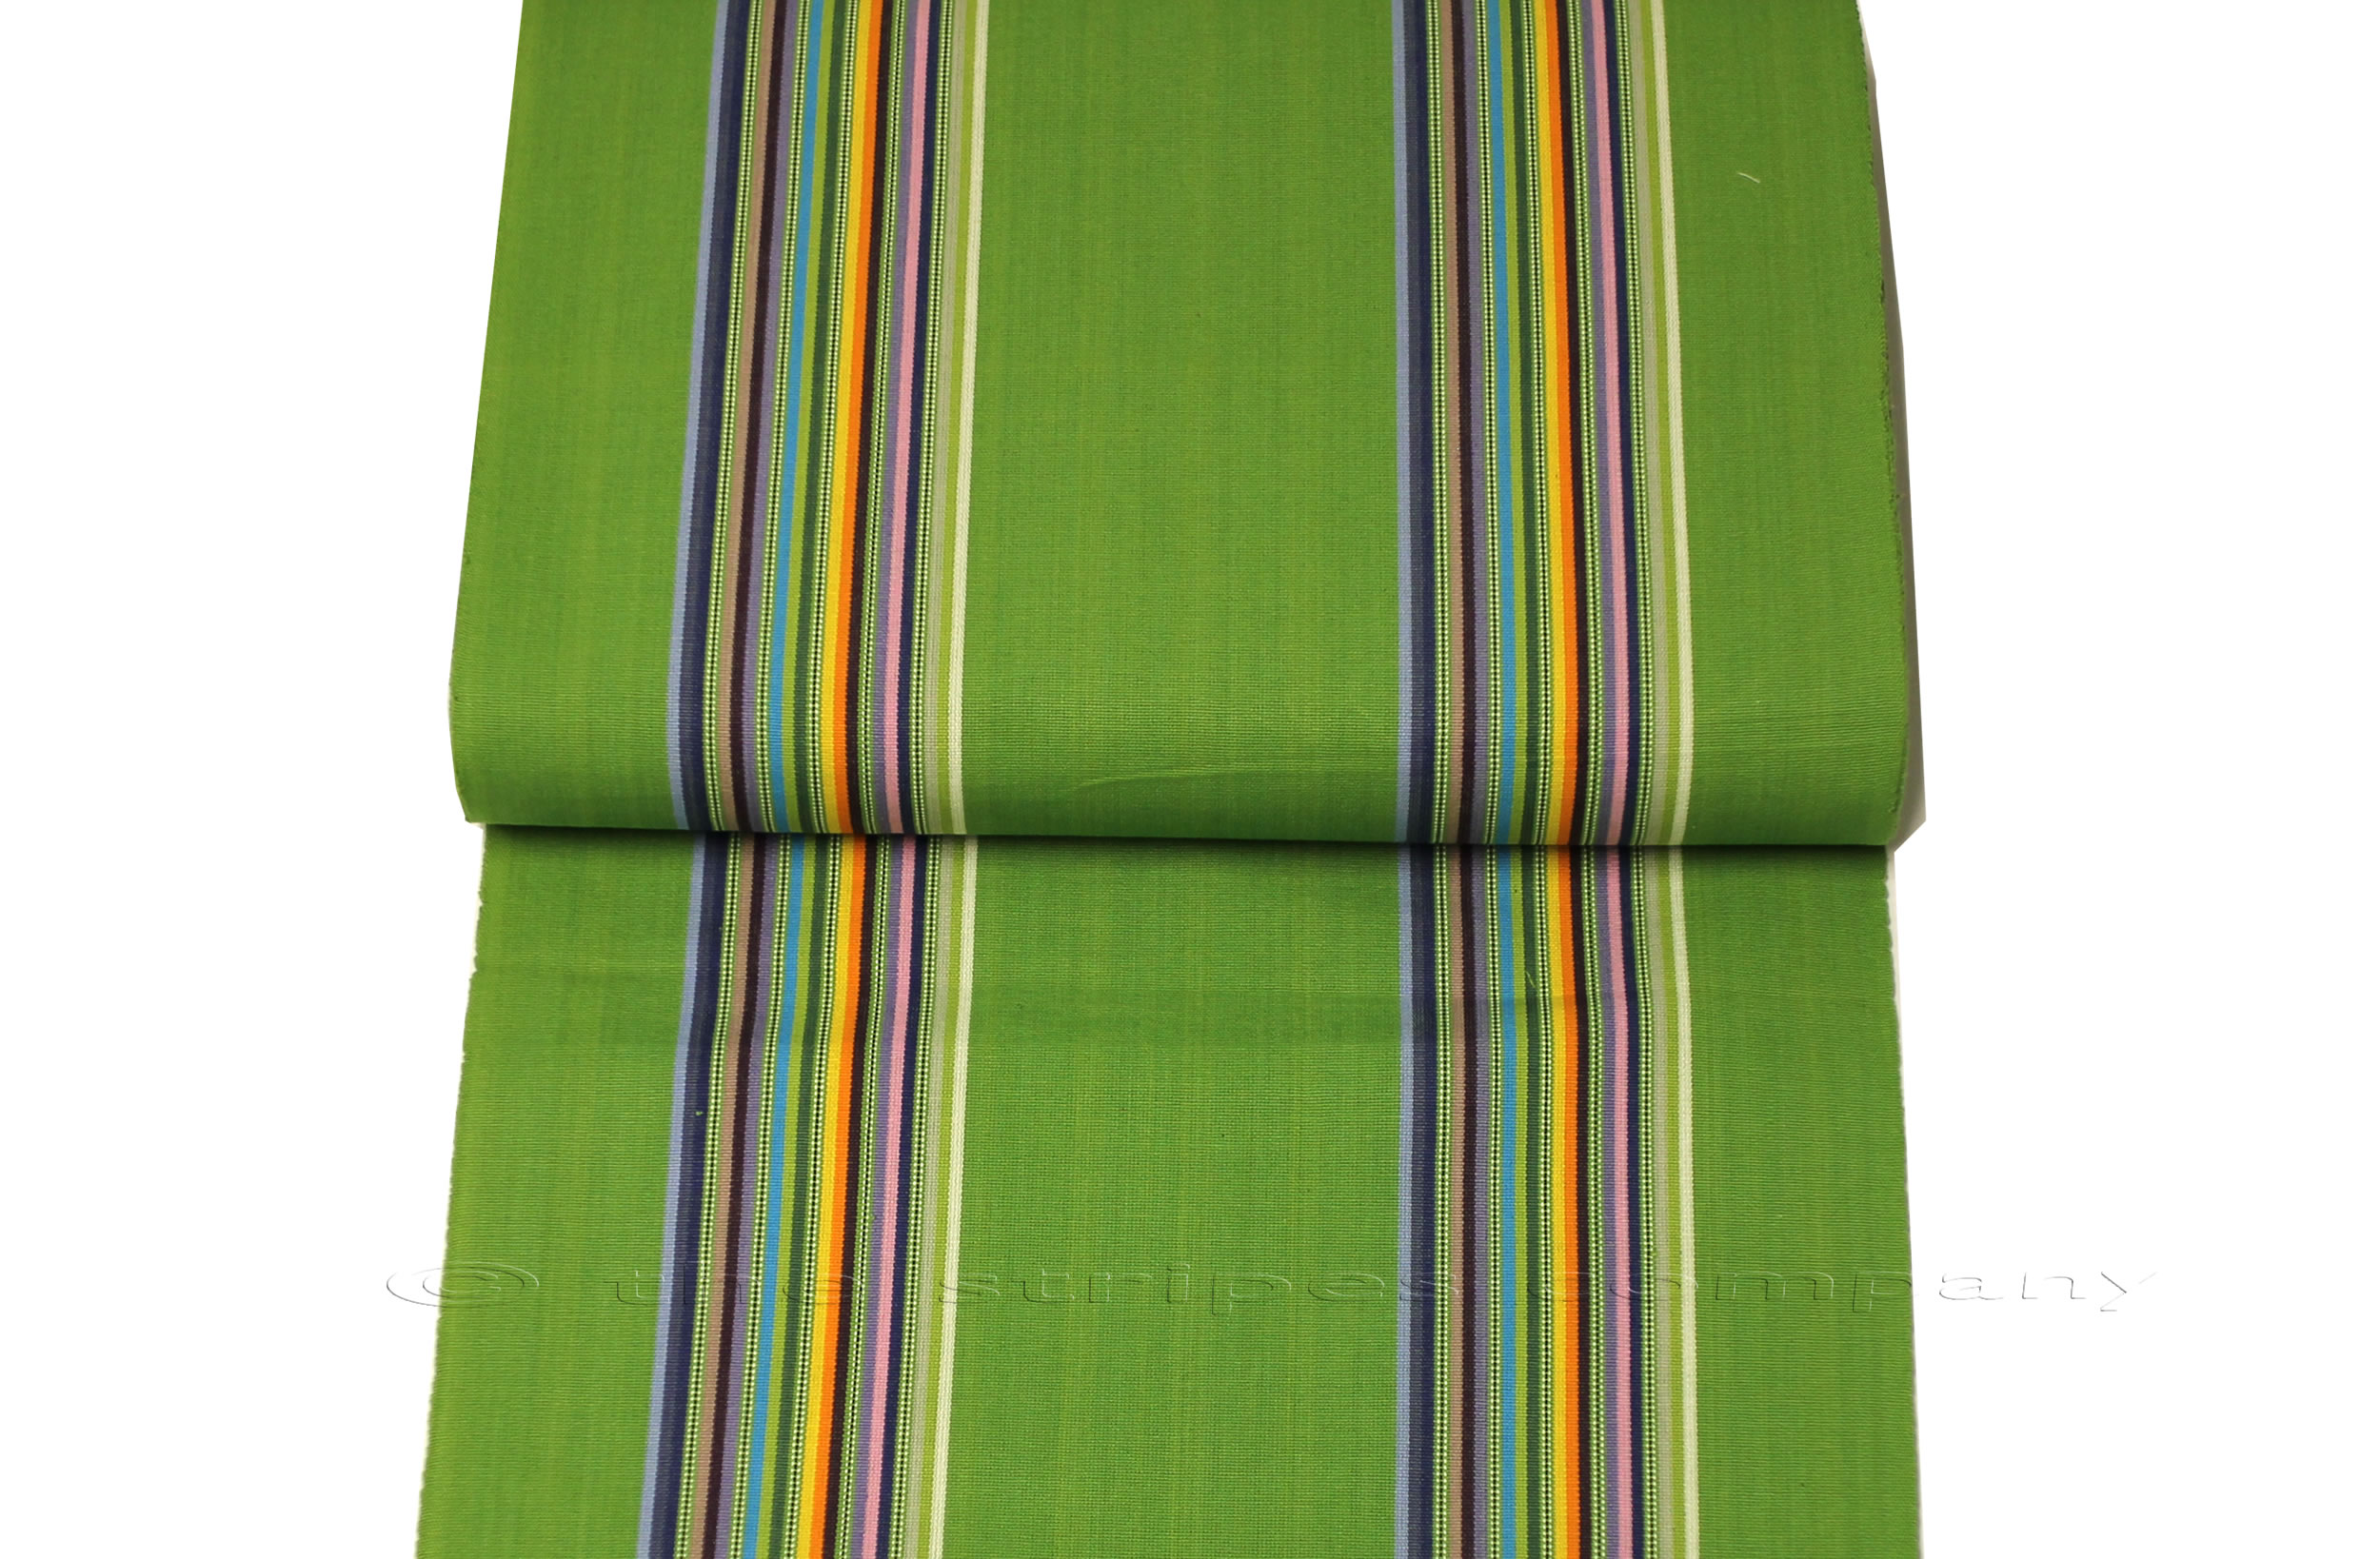 Green Striped Deckchair Canvas Fabric, Strong Weave, with Rainbow Stripes